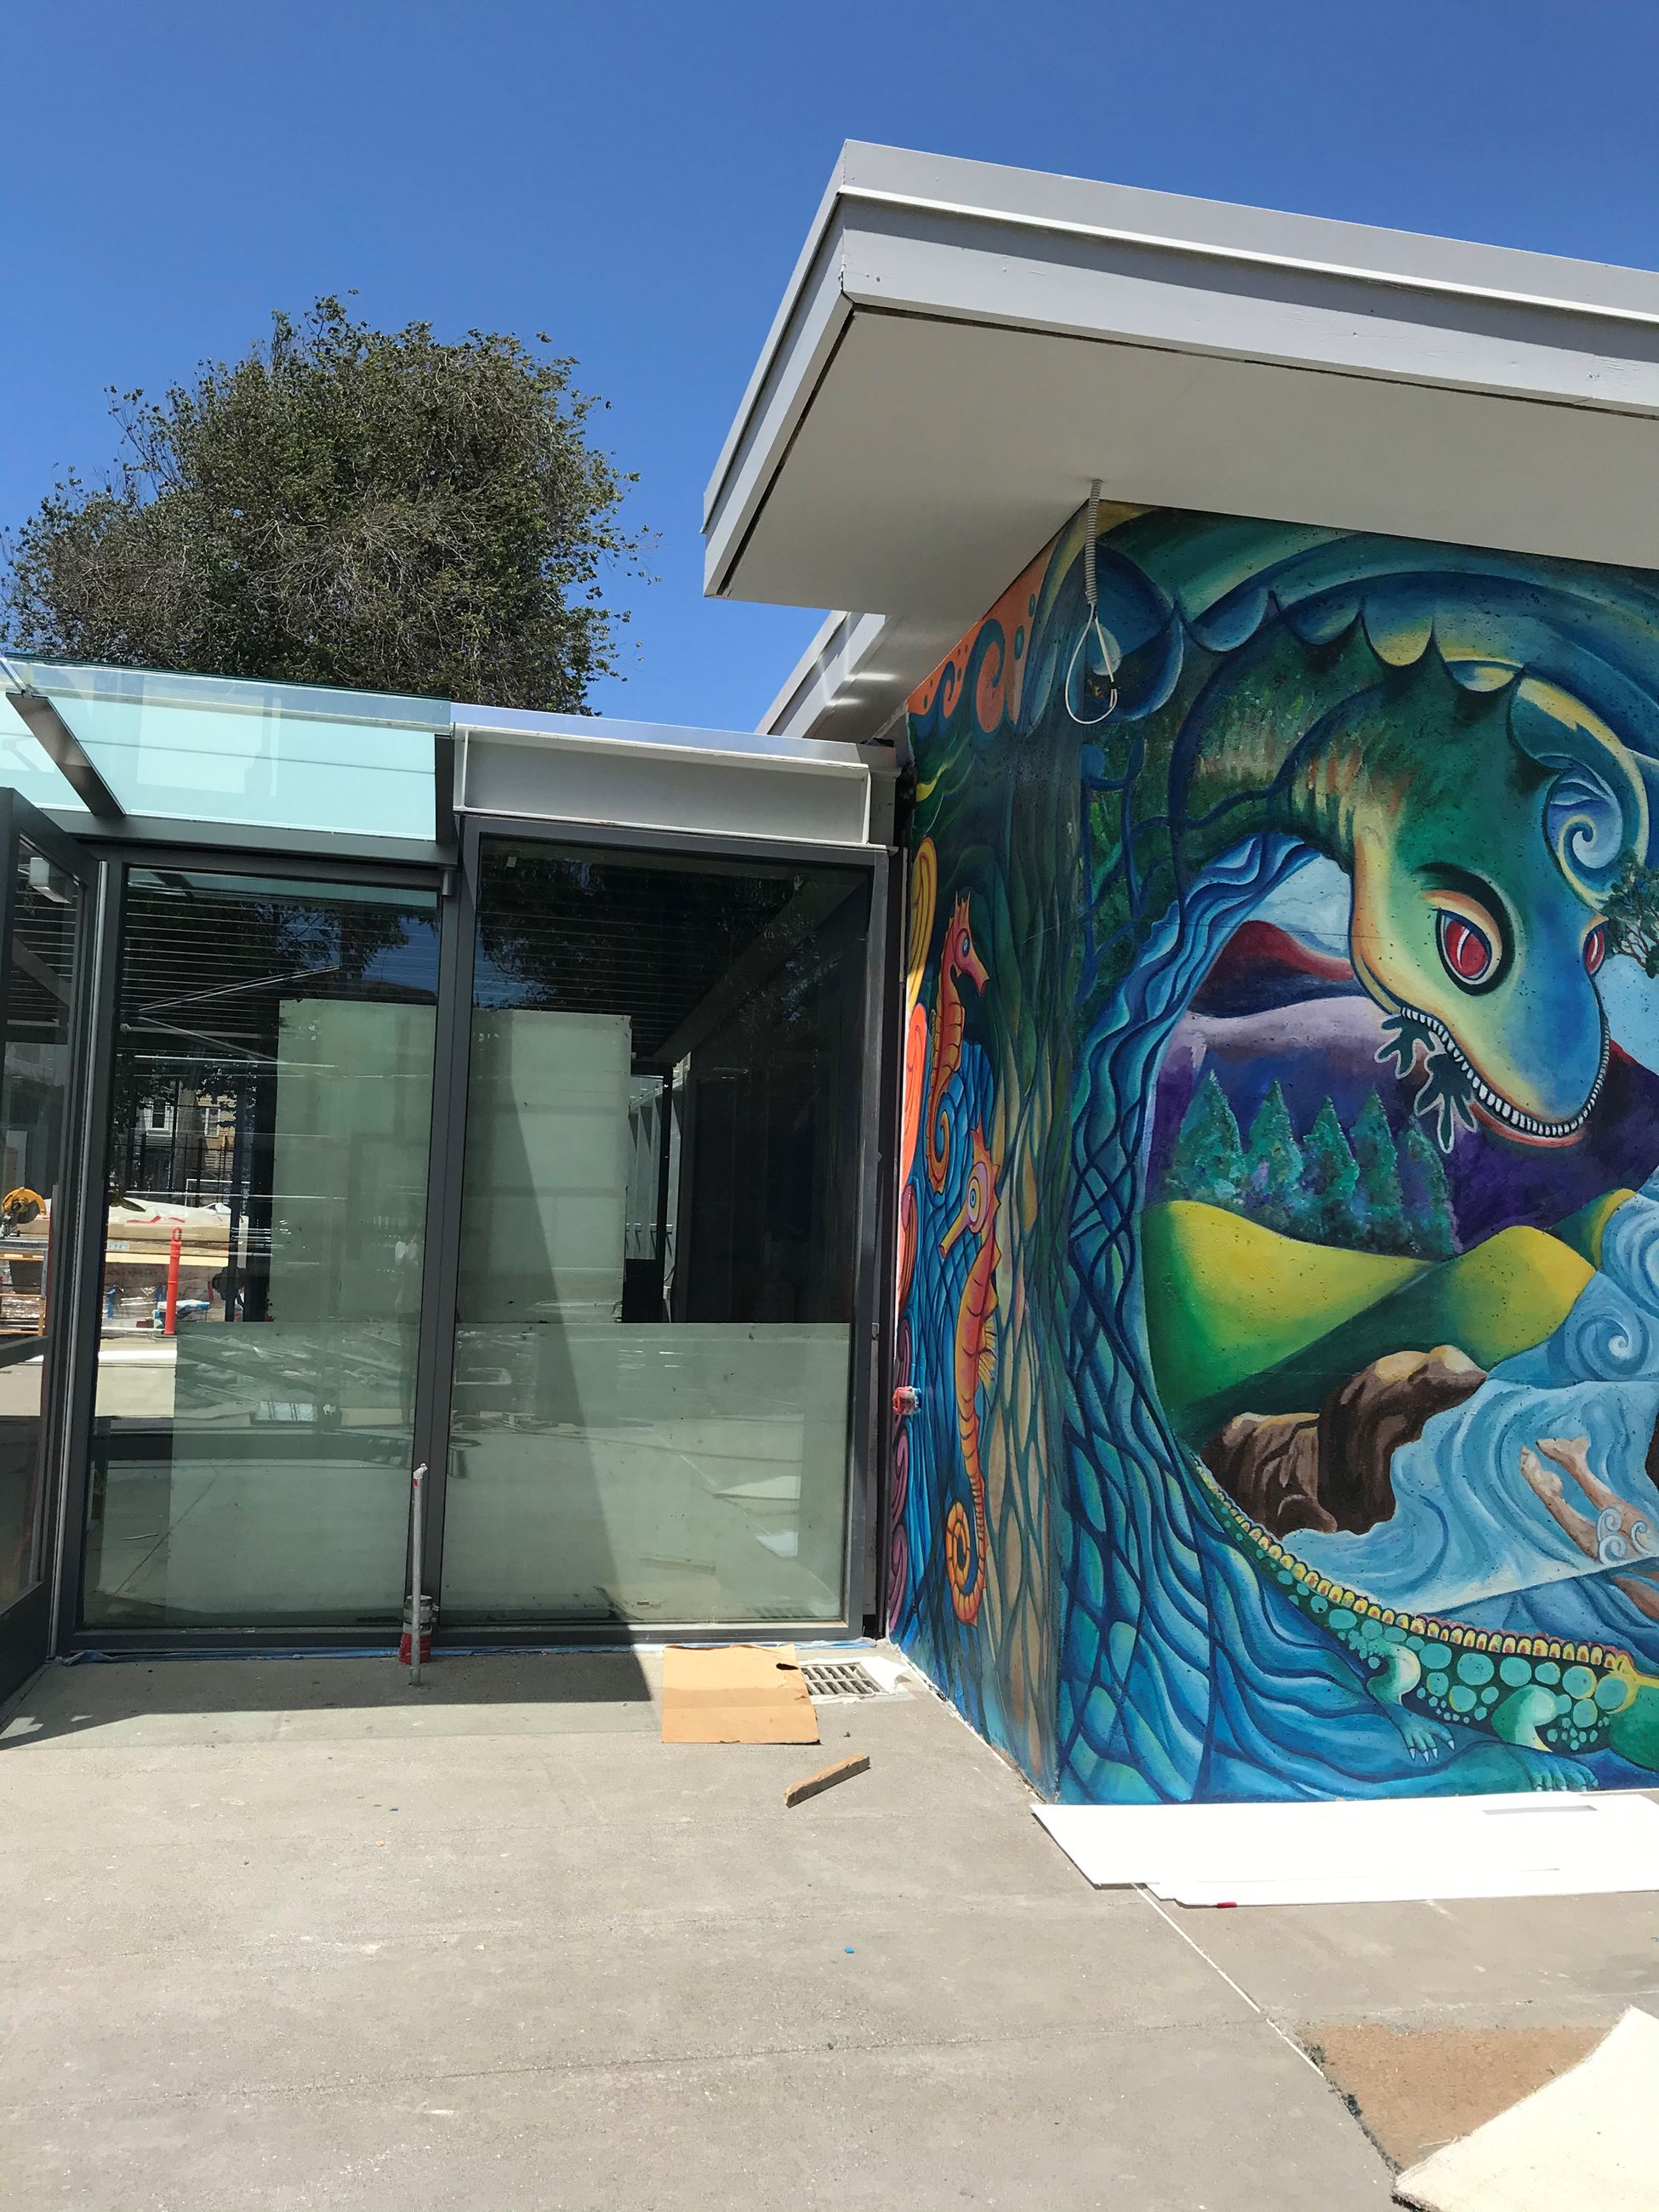 Mural with blue and green dragon is on the left. Window next to the entrance is shown on the right.